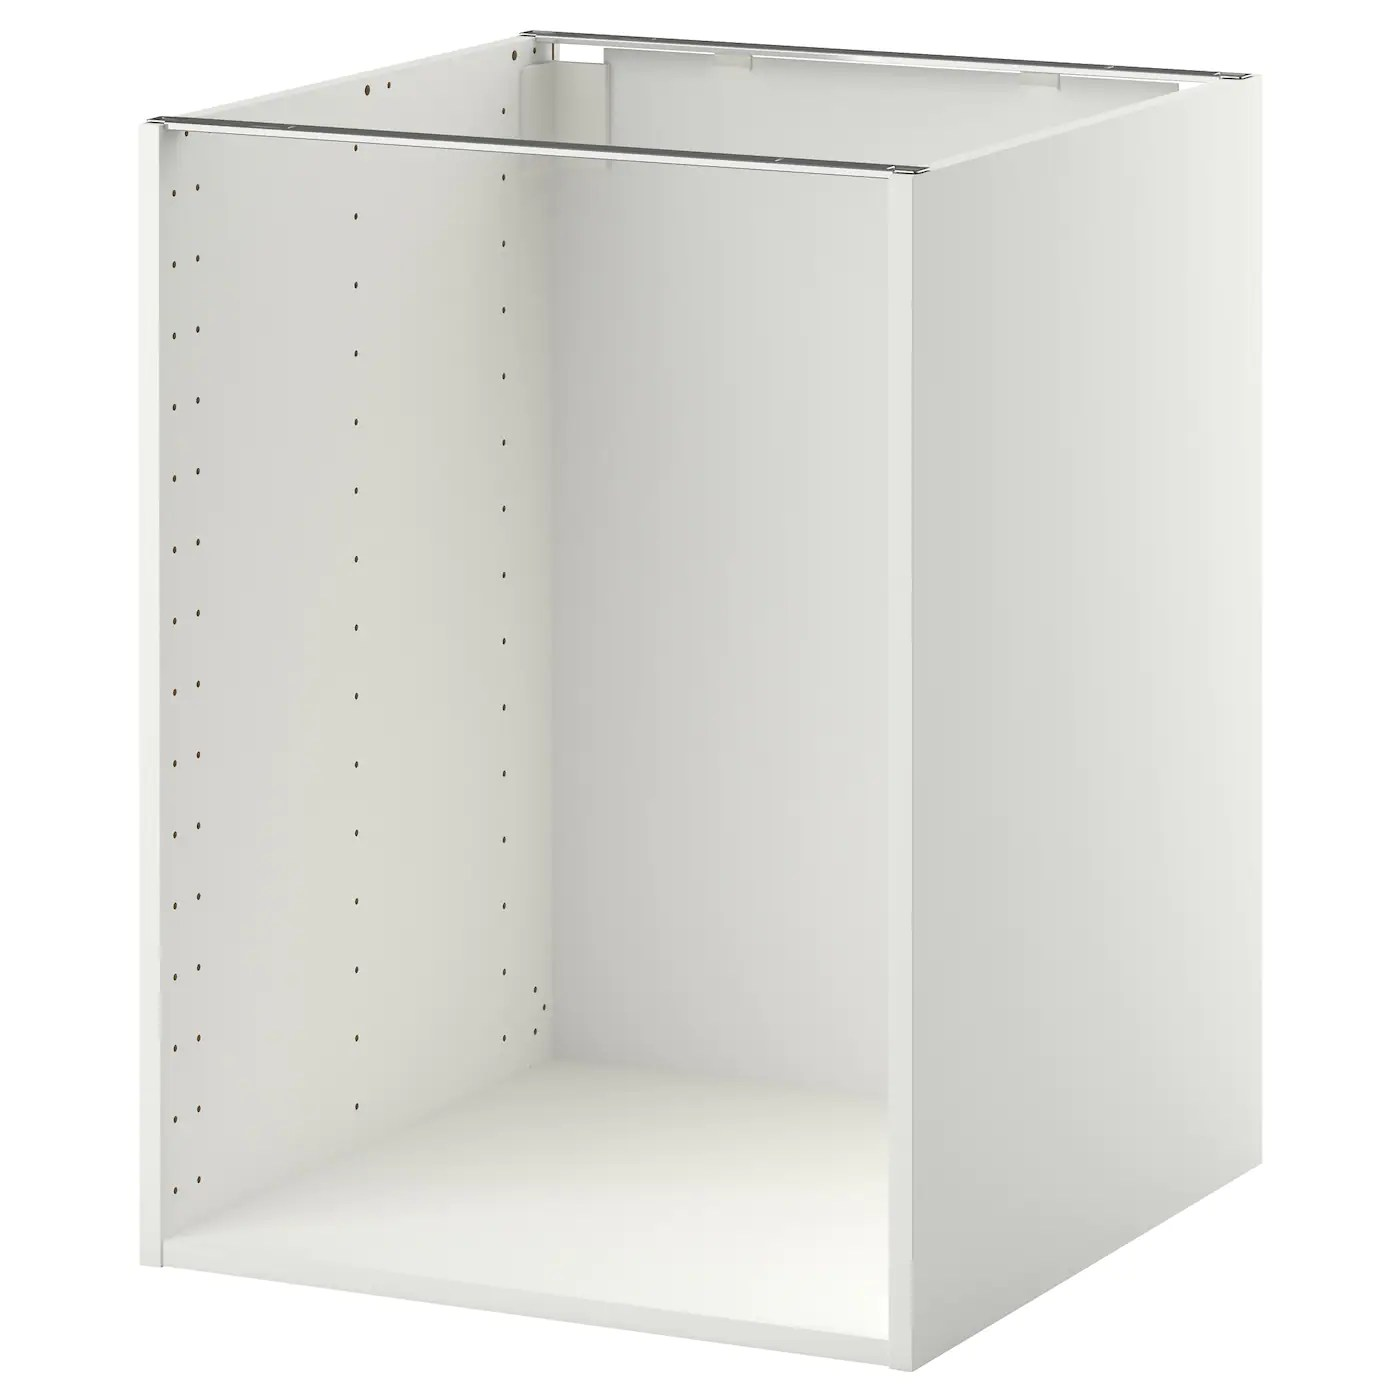 outdoor kitchen frames planning tool cabinets units ikea metod base cabinet frame sturdy construction 18 mm thick